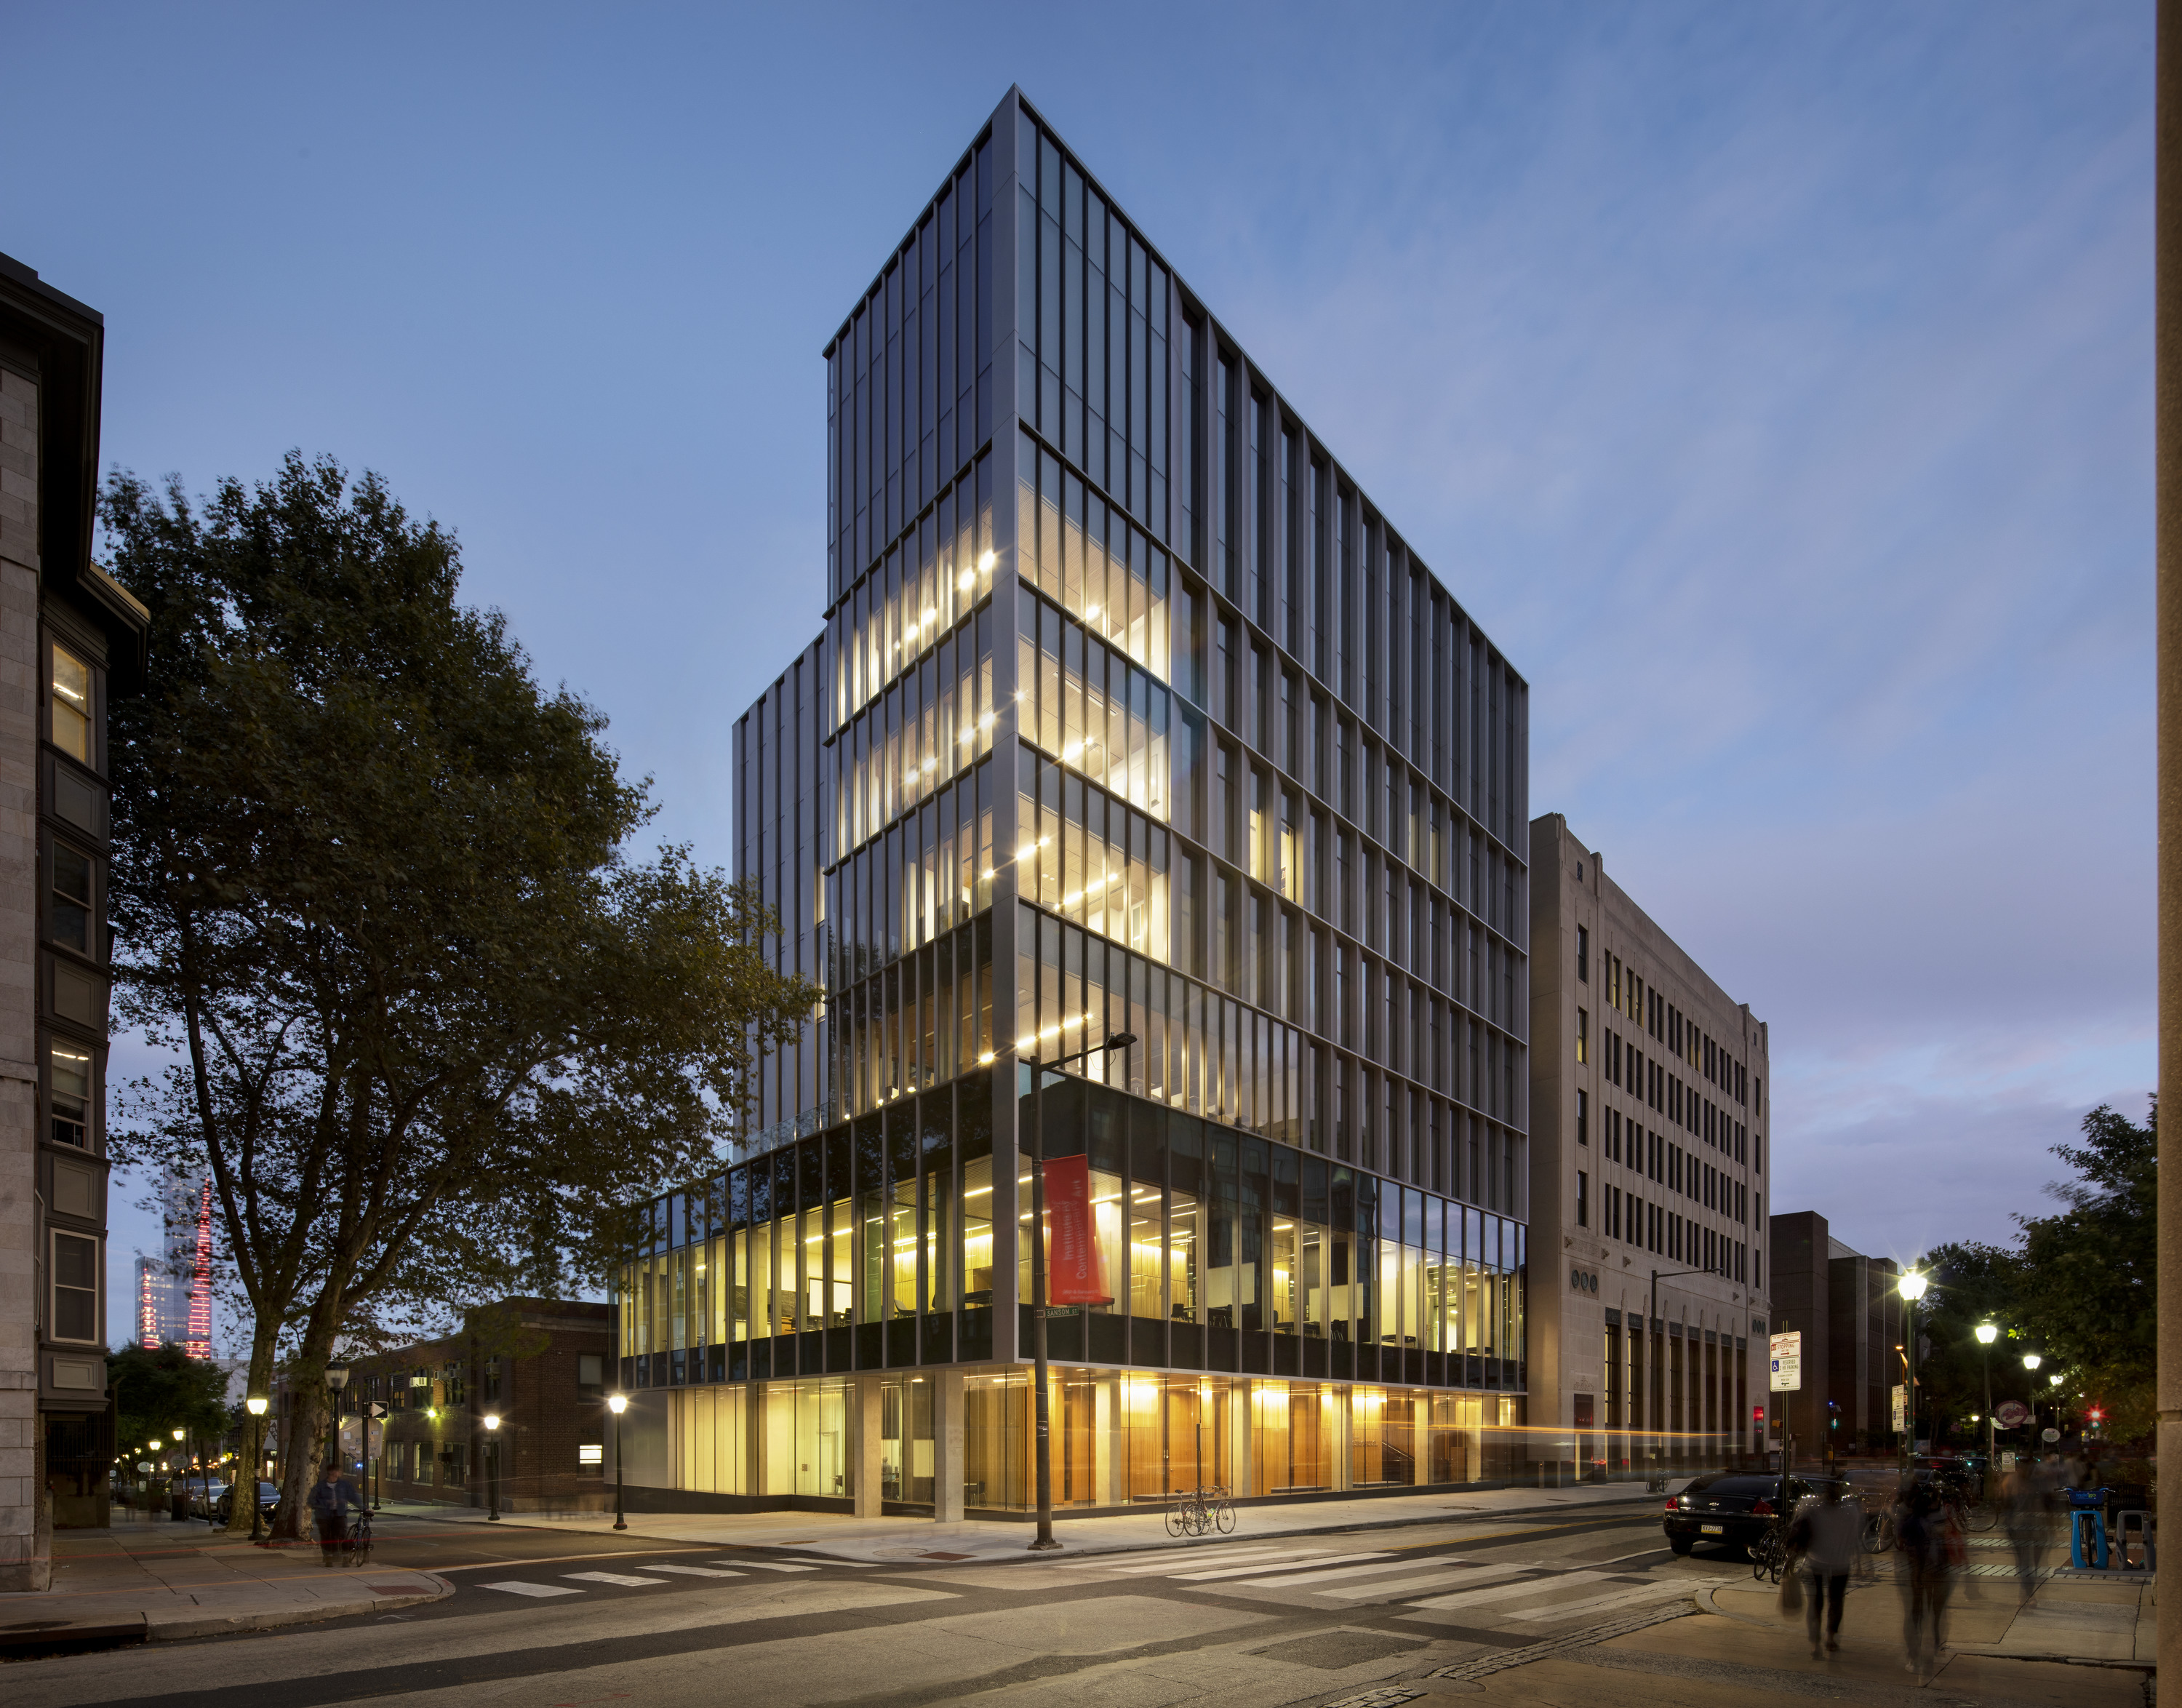 Perelman Center for Political Science and Economics - Science